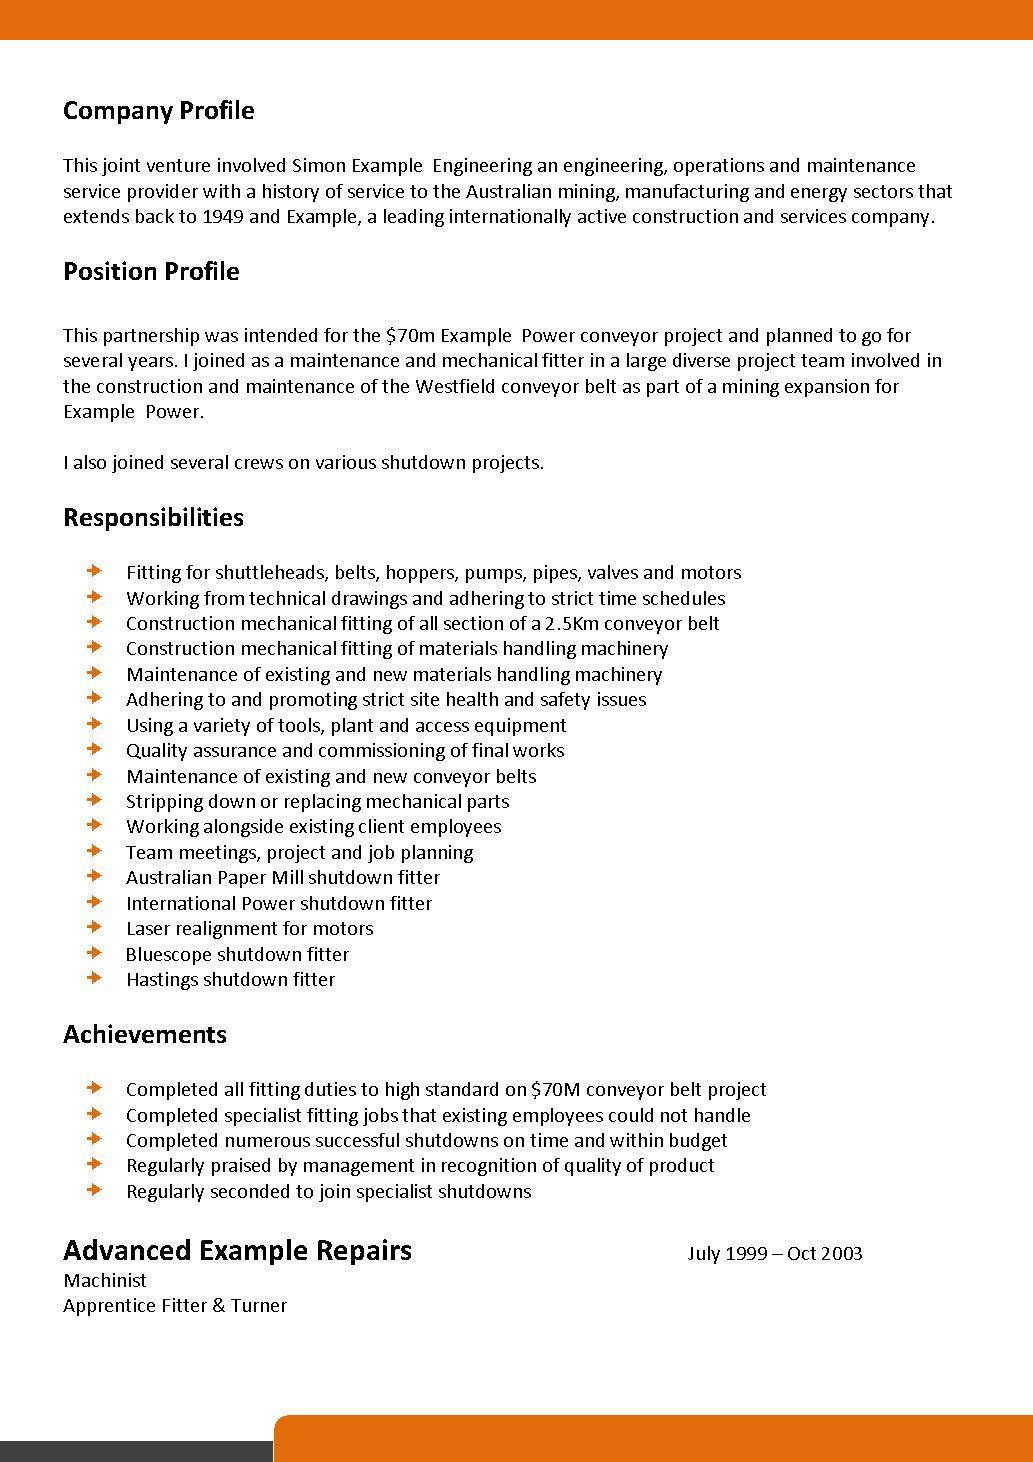 Mechanical and Maintenance Fitter Resume Template 093 : 82264862 from www.ashop.me size 1033 x 1462 jpeg 202kB